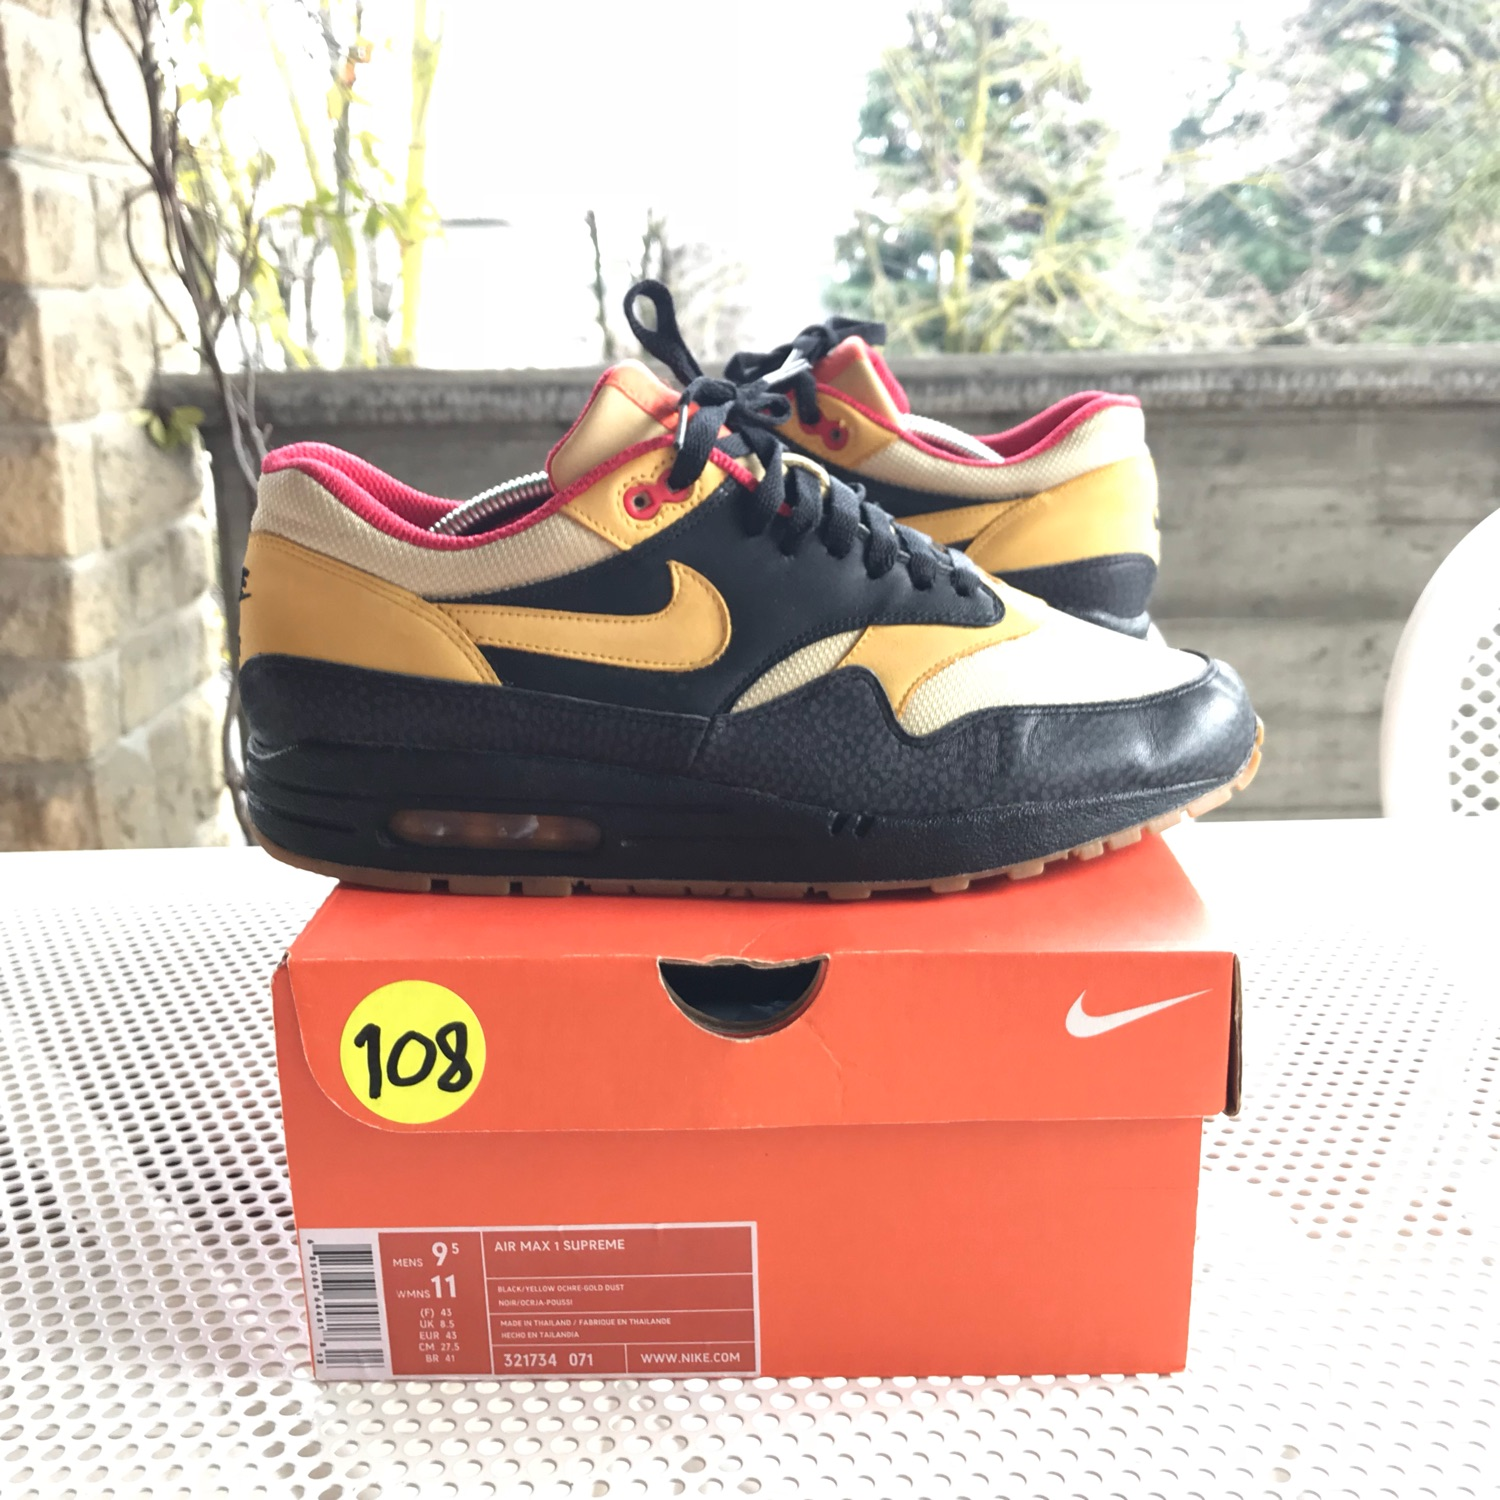 finest selection 26f7b 25ccb Nike Air Max 1 Supreme Tech Pack Safari Spider